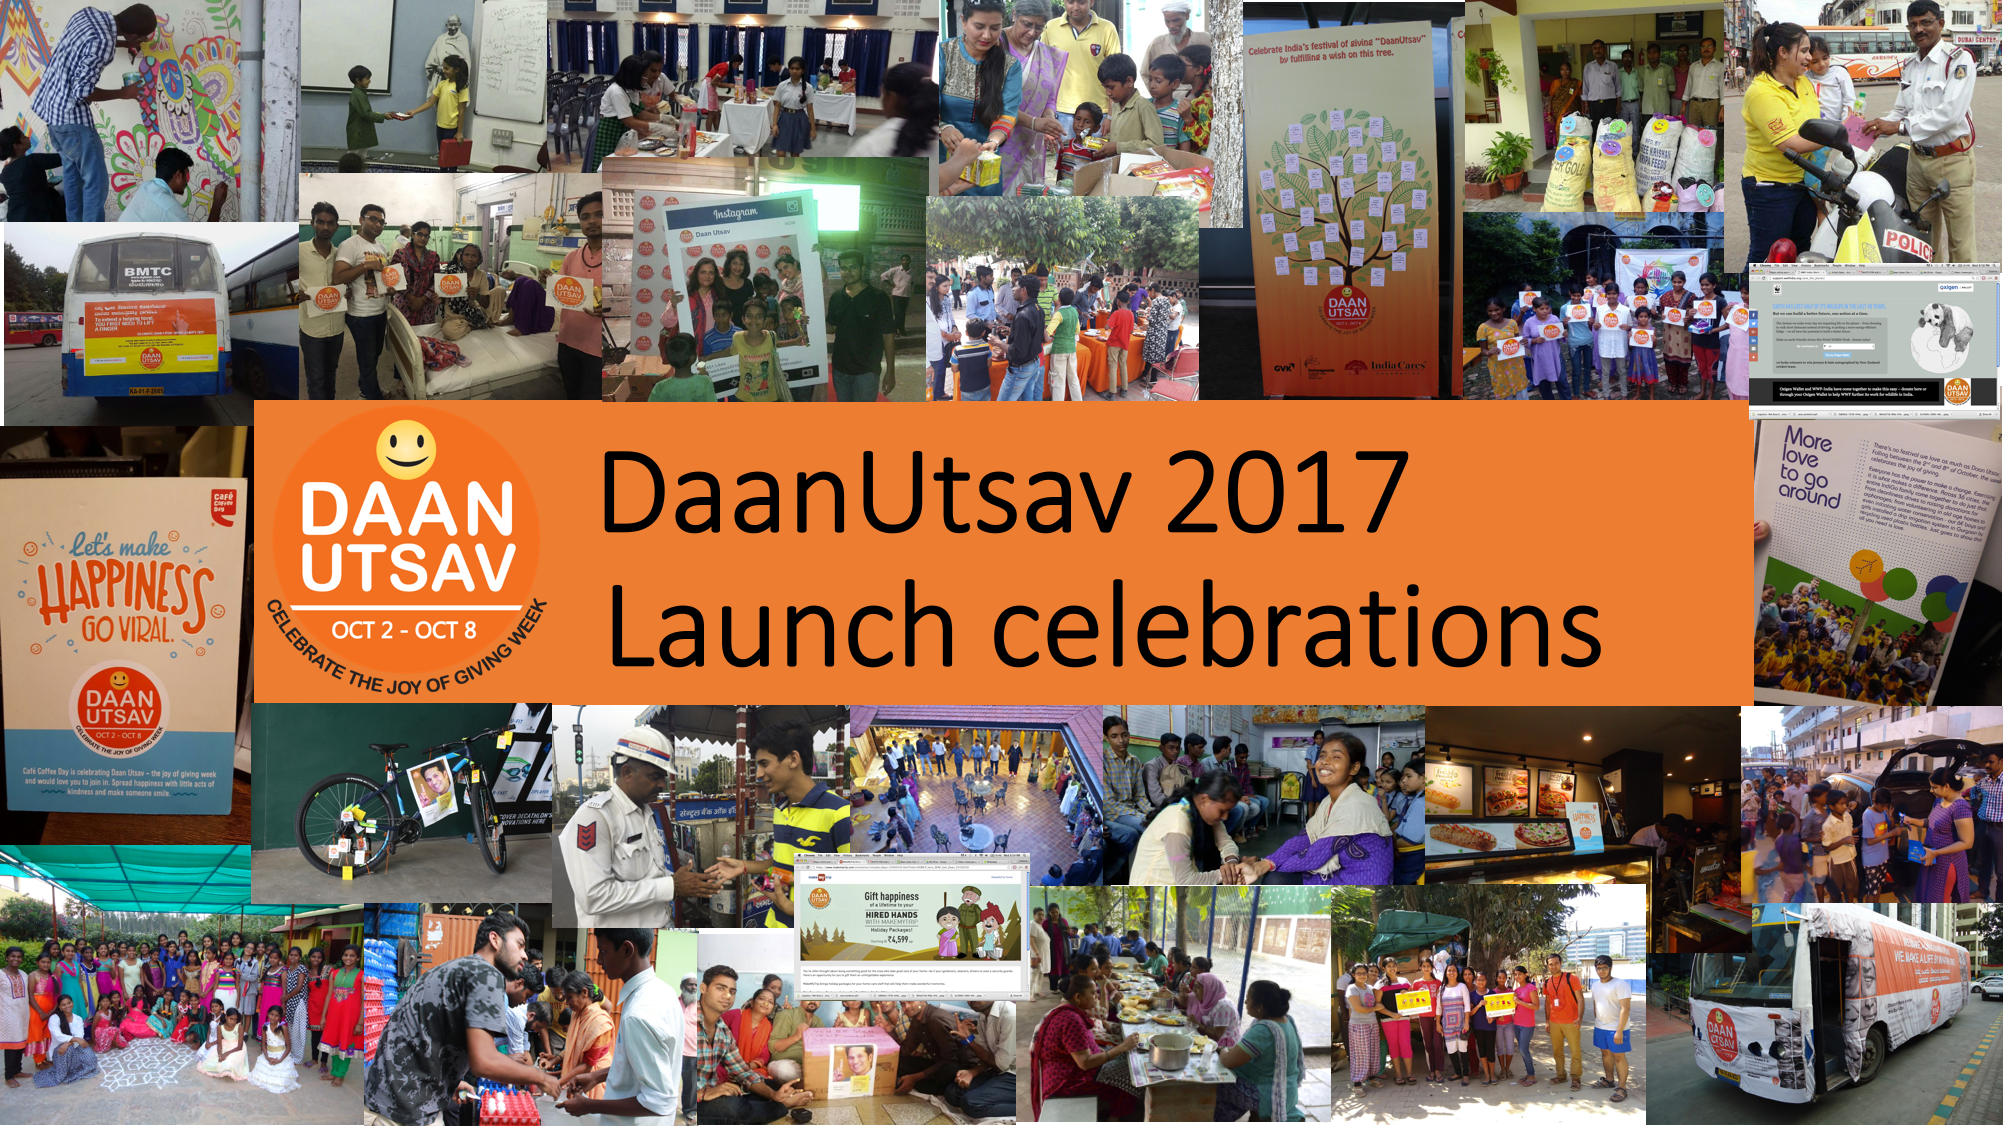 DaanUtsav 2017 Launch  - Explara